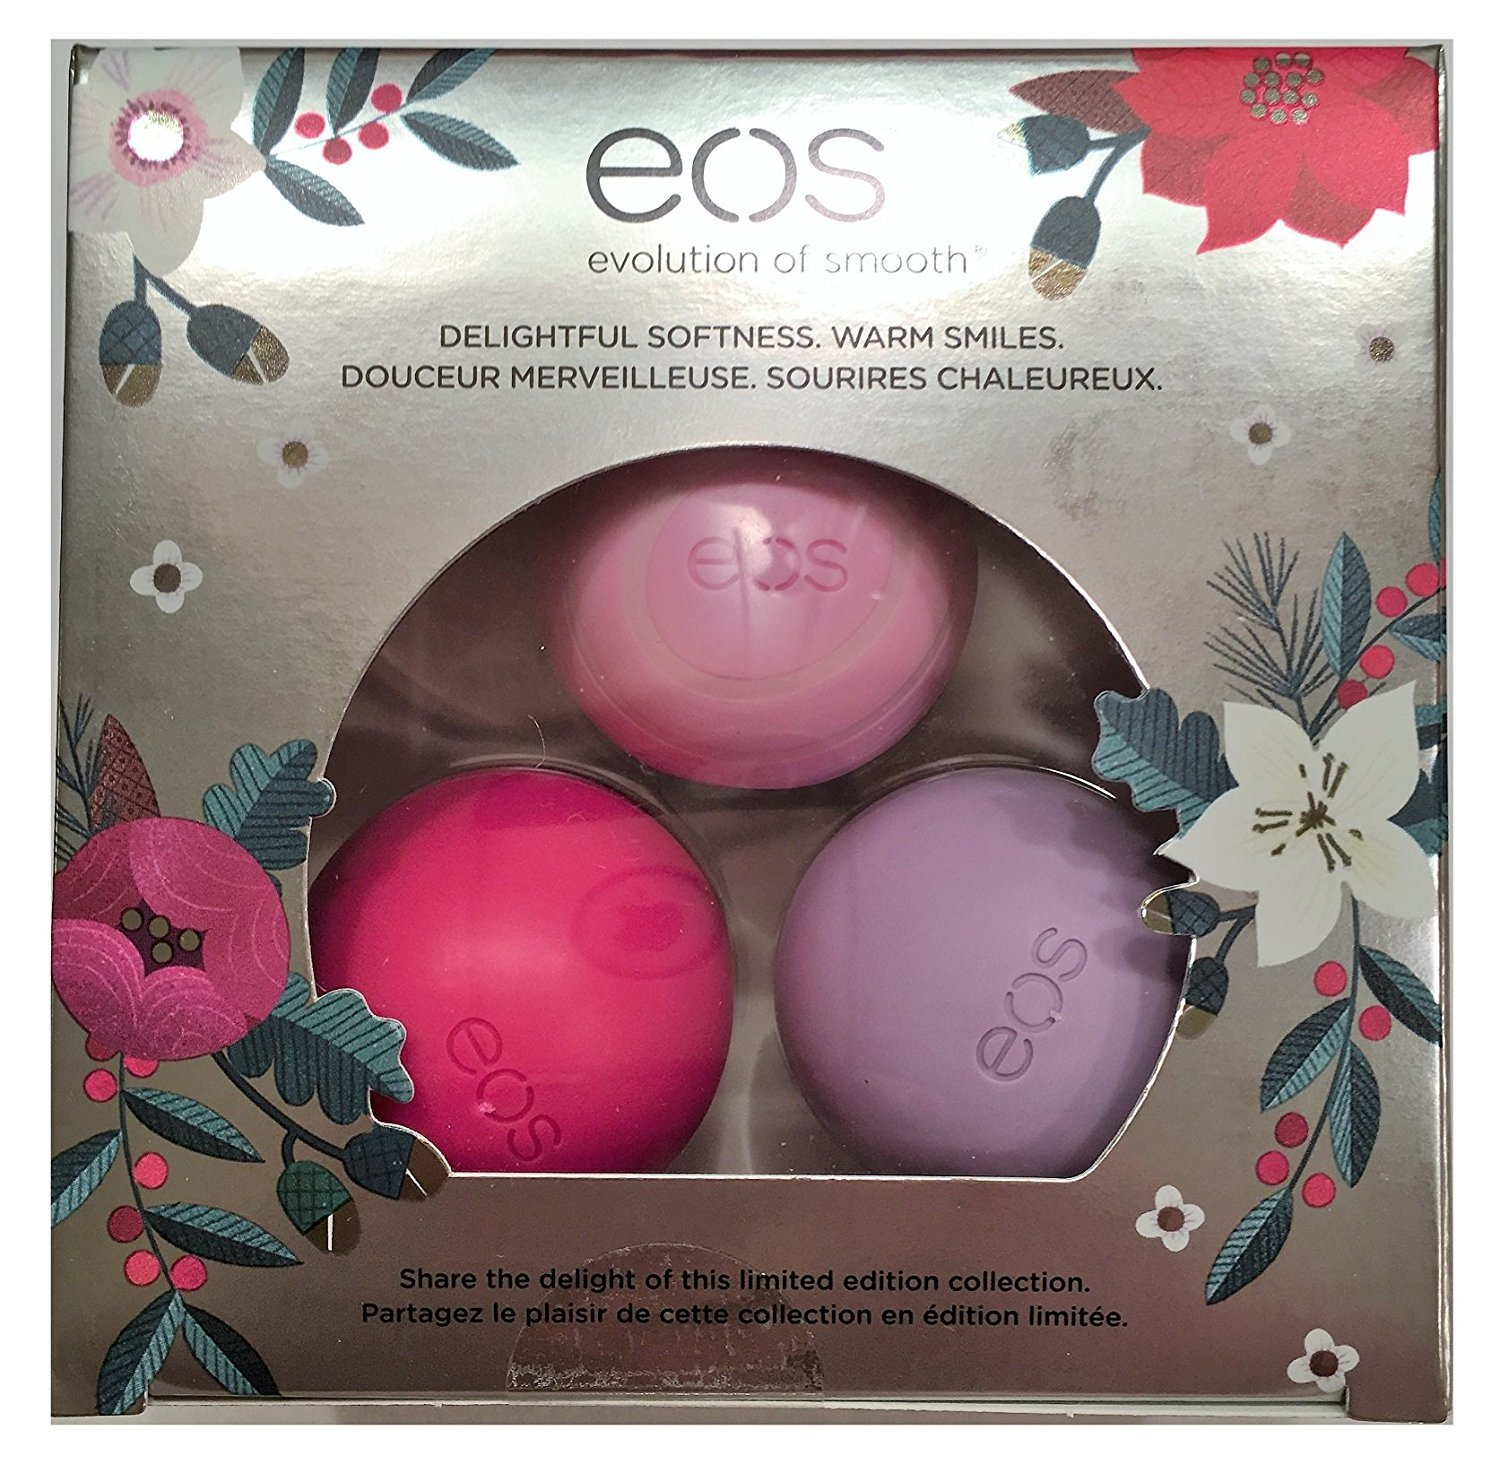 Eos Limited Edition Holiday Lip Balm Sphere Collections 2016 3-pack 2017 3-pack limited editions